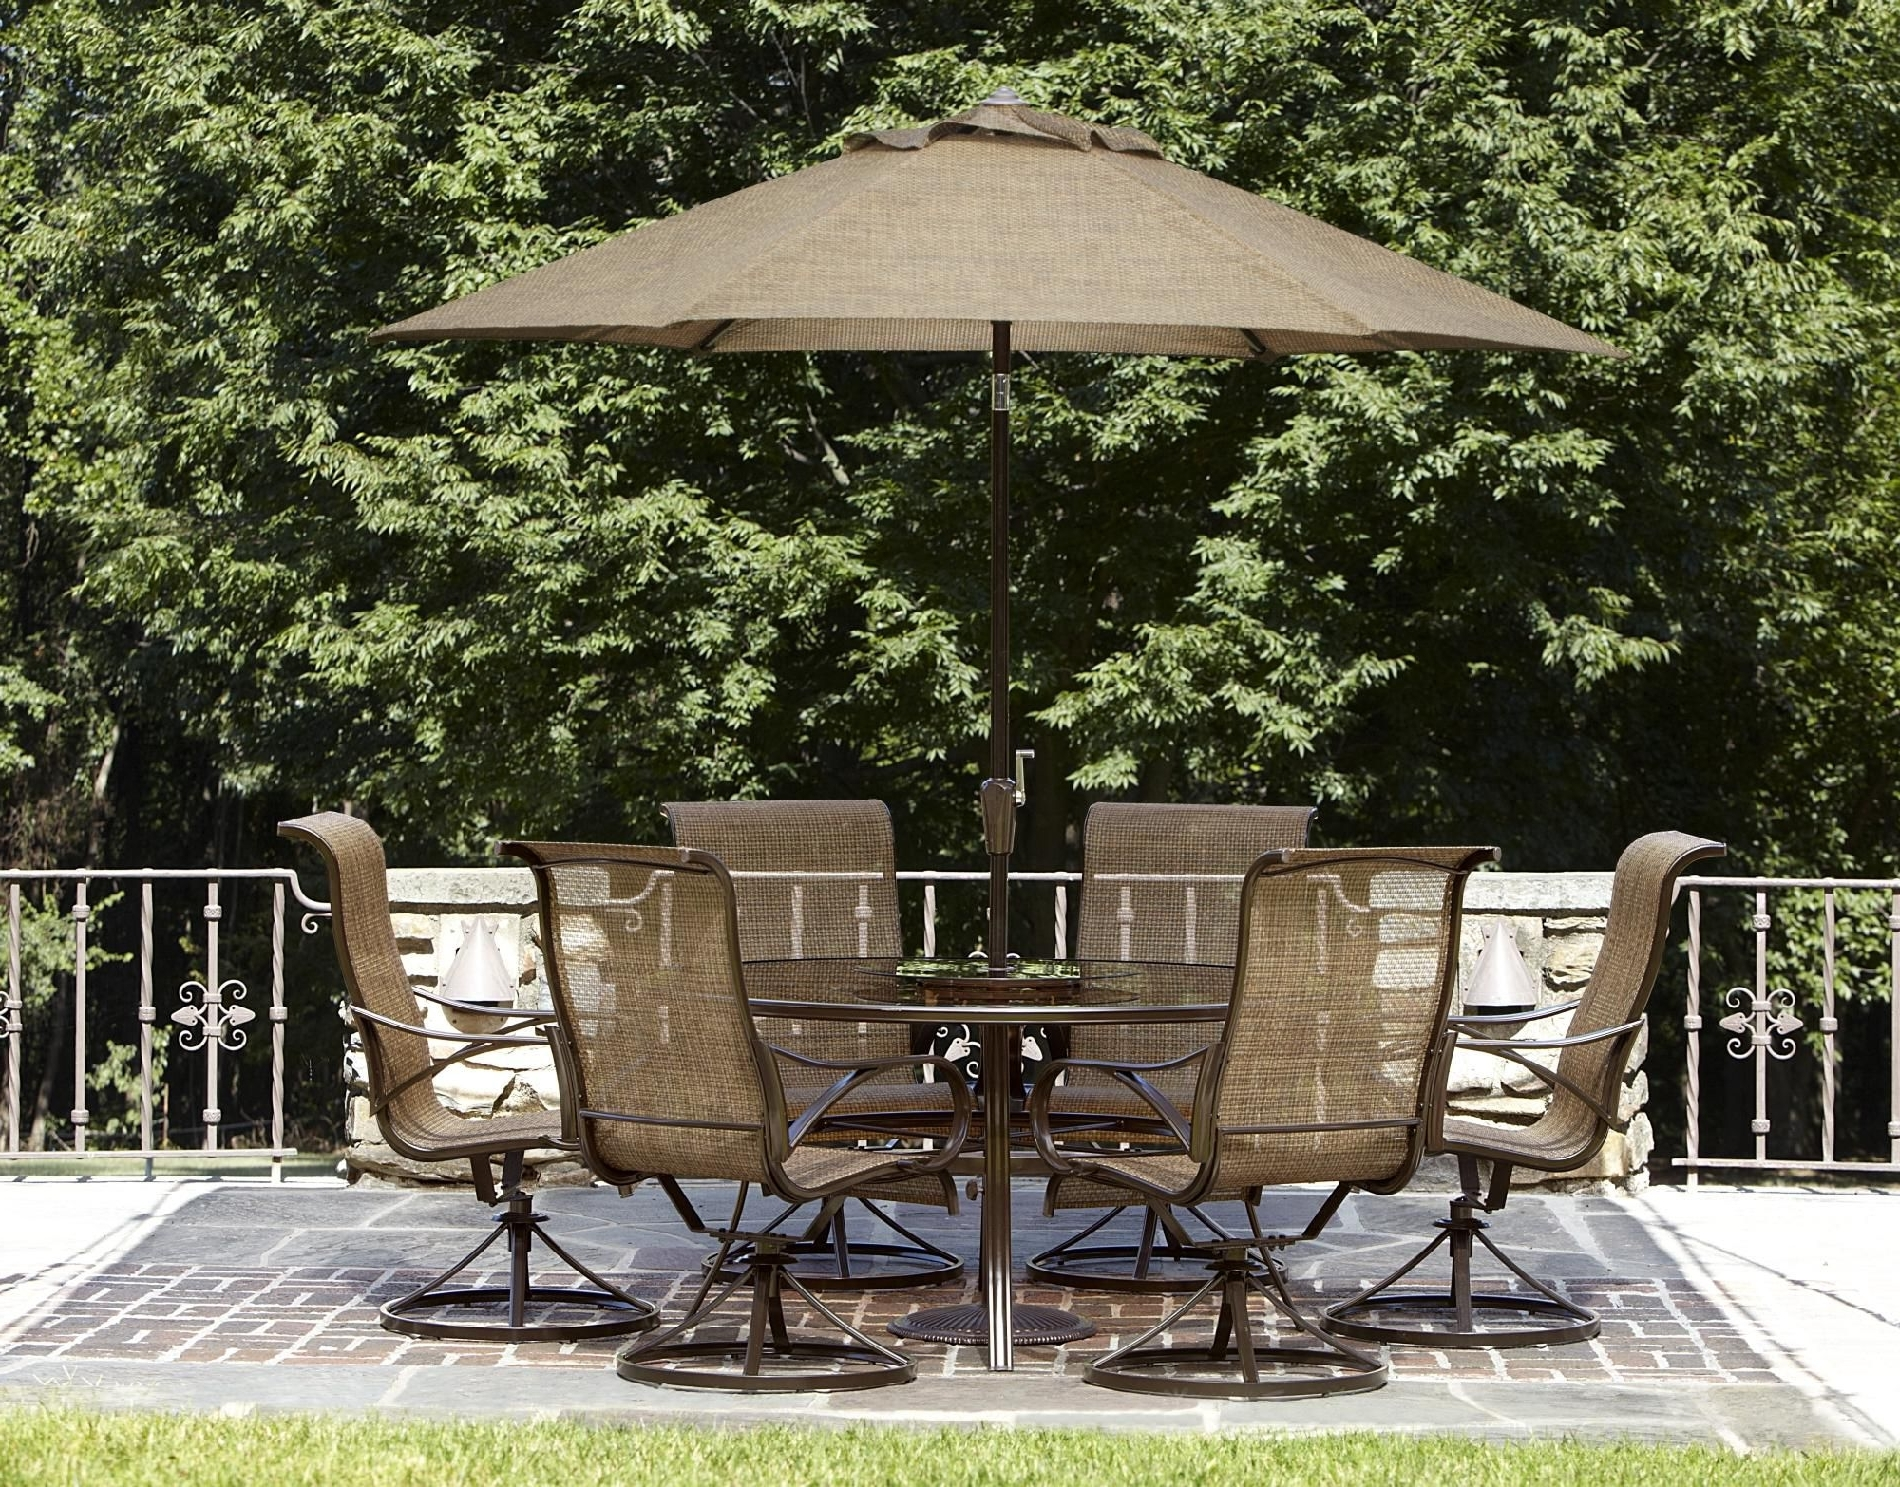 Best And Newest Garden: Enchanting Outdoor Patio Decor Ideas With Patio Umbrellas Throughout Cheap Patio Umbrellas (View 19 of 20)